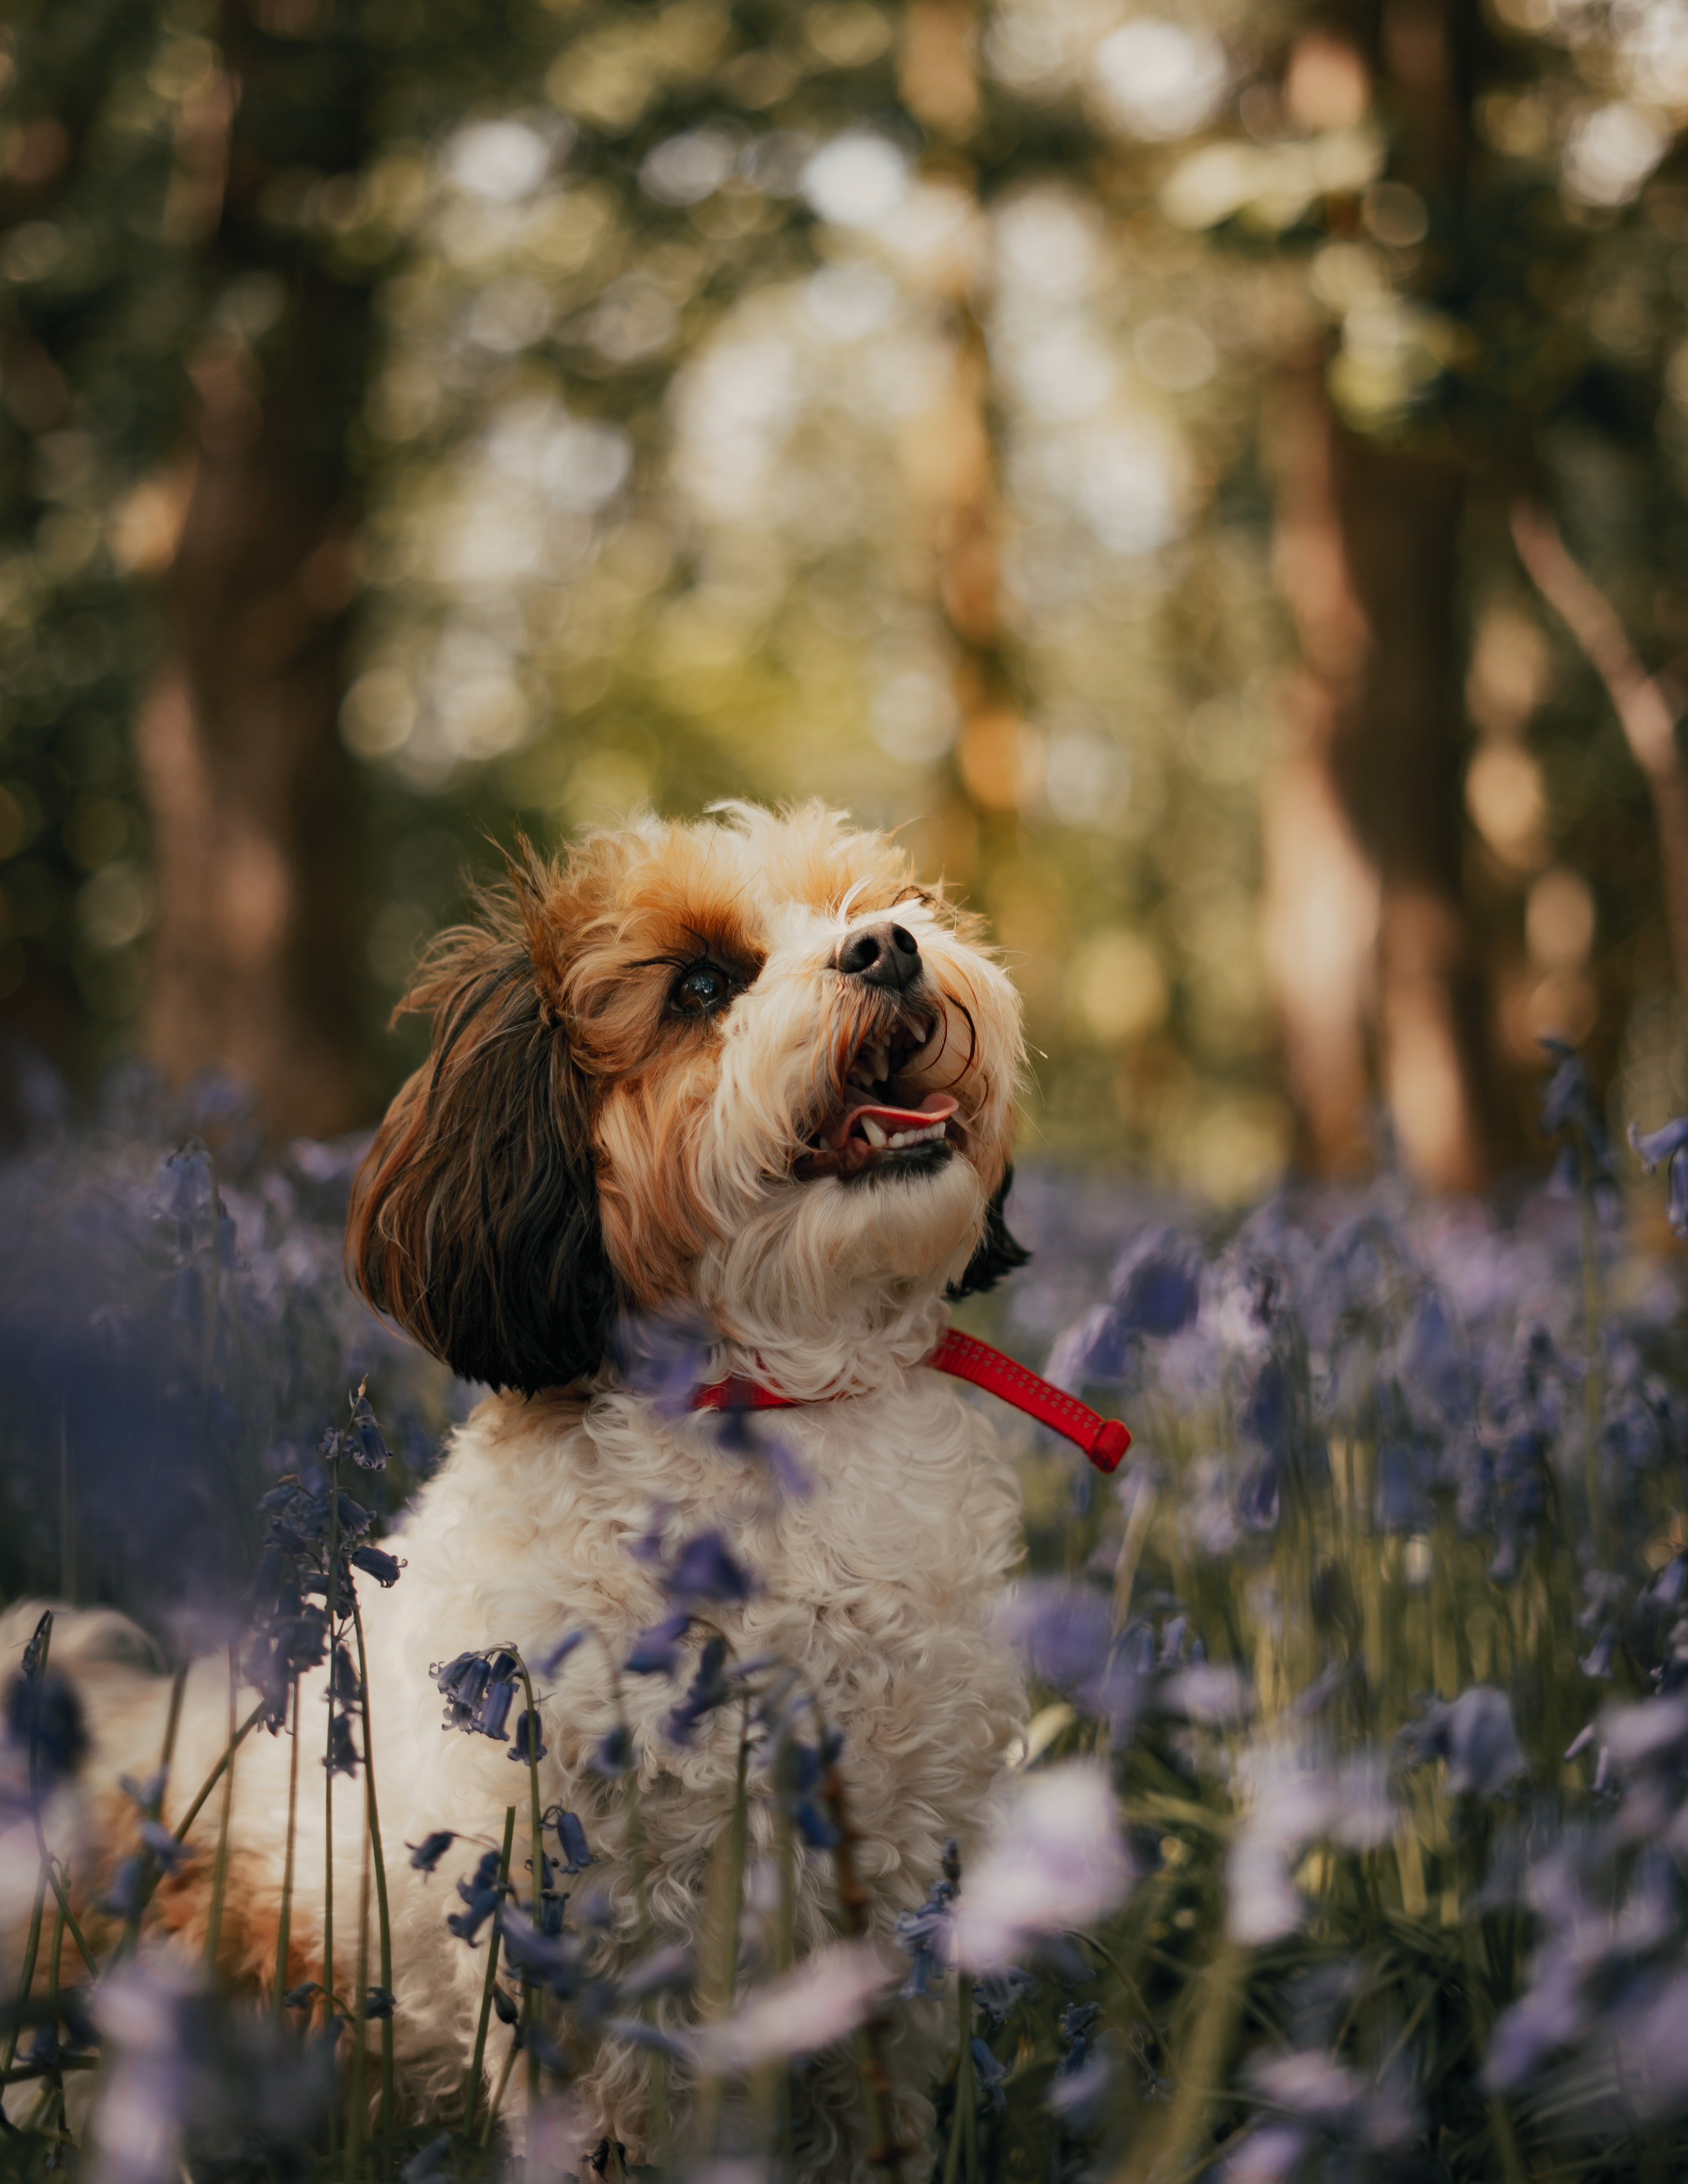 103771 download wallpaper Animals, Kawachon, Kawashon, Dog, Puppy, Flowers screensavers and pictures for free